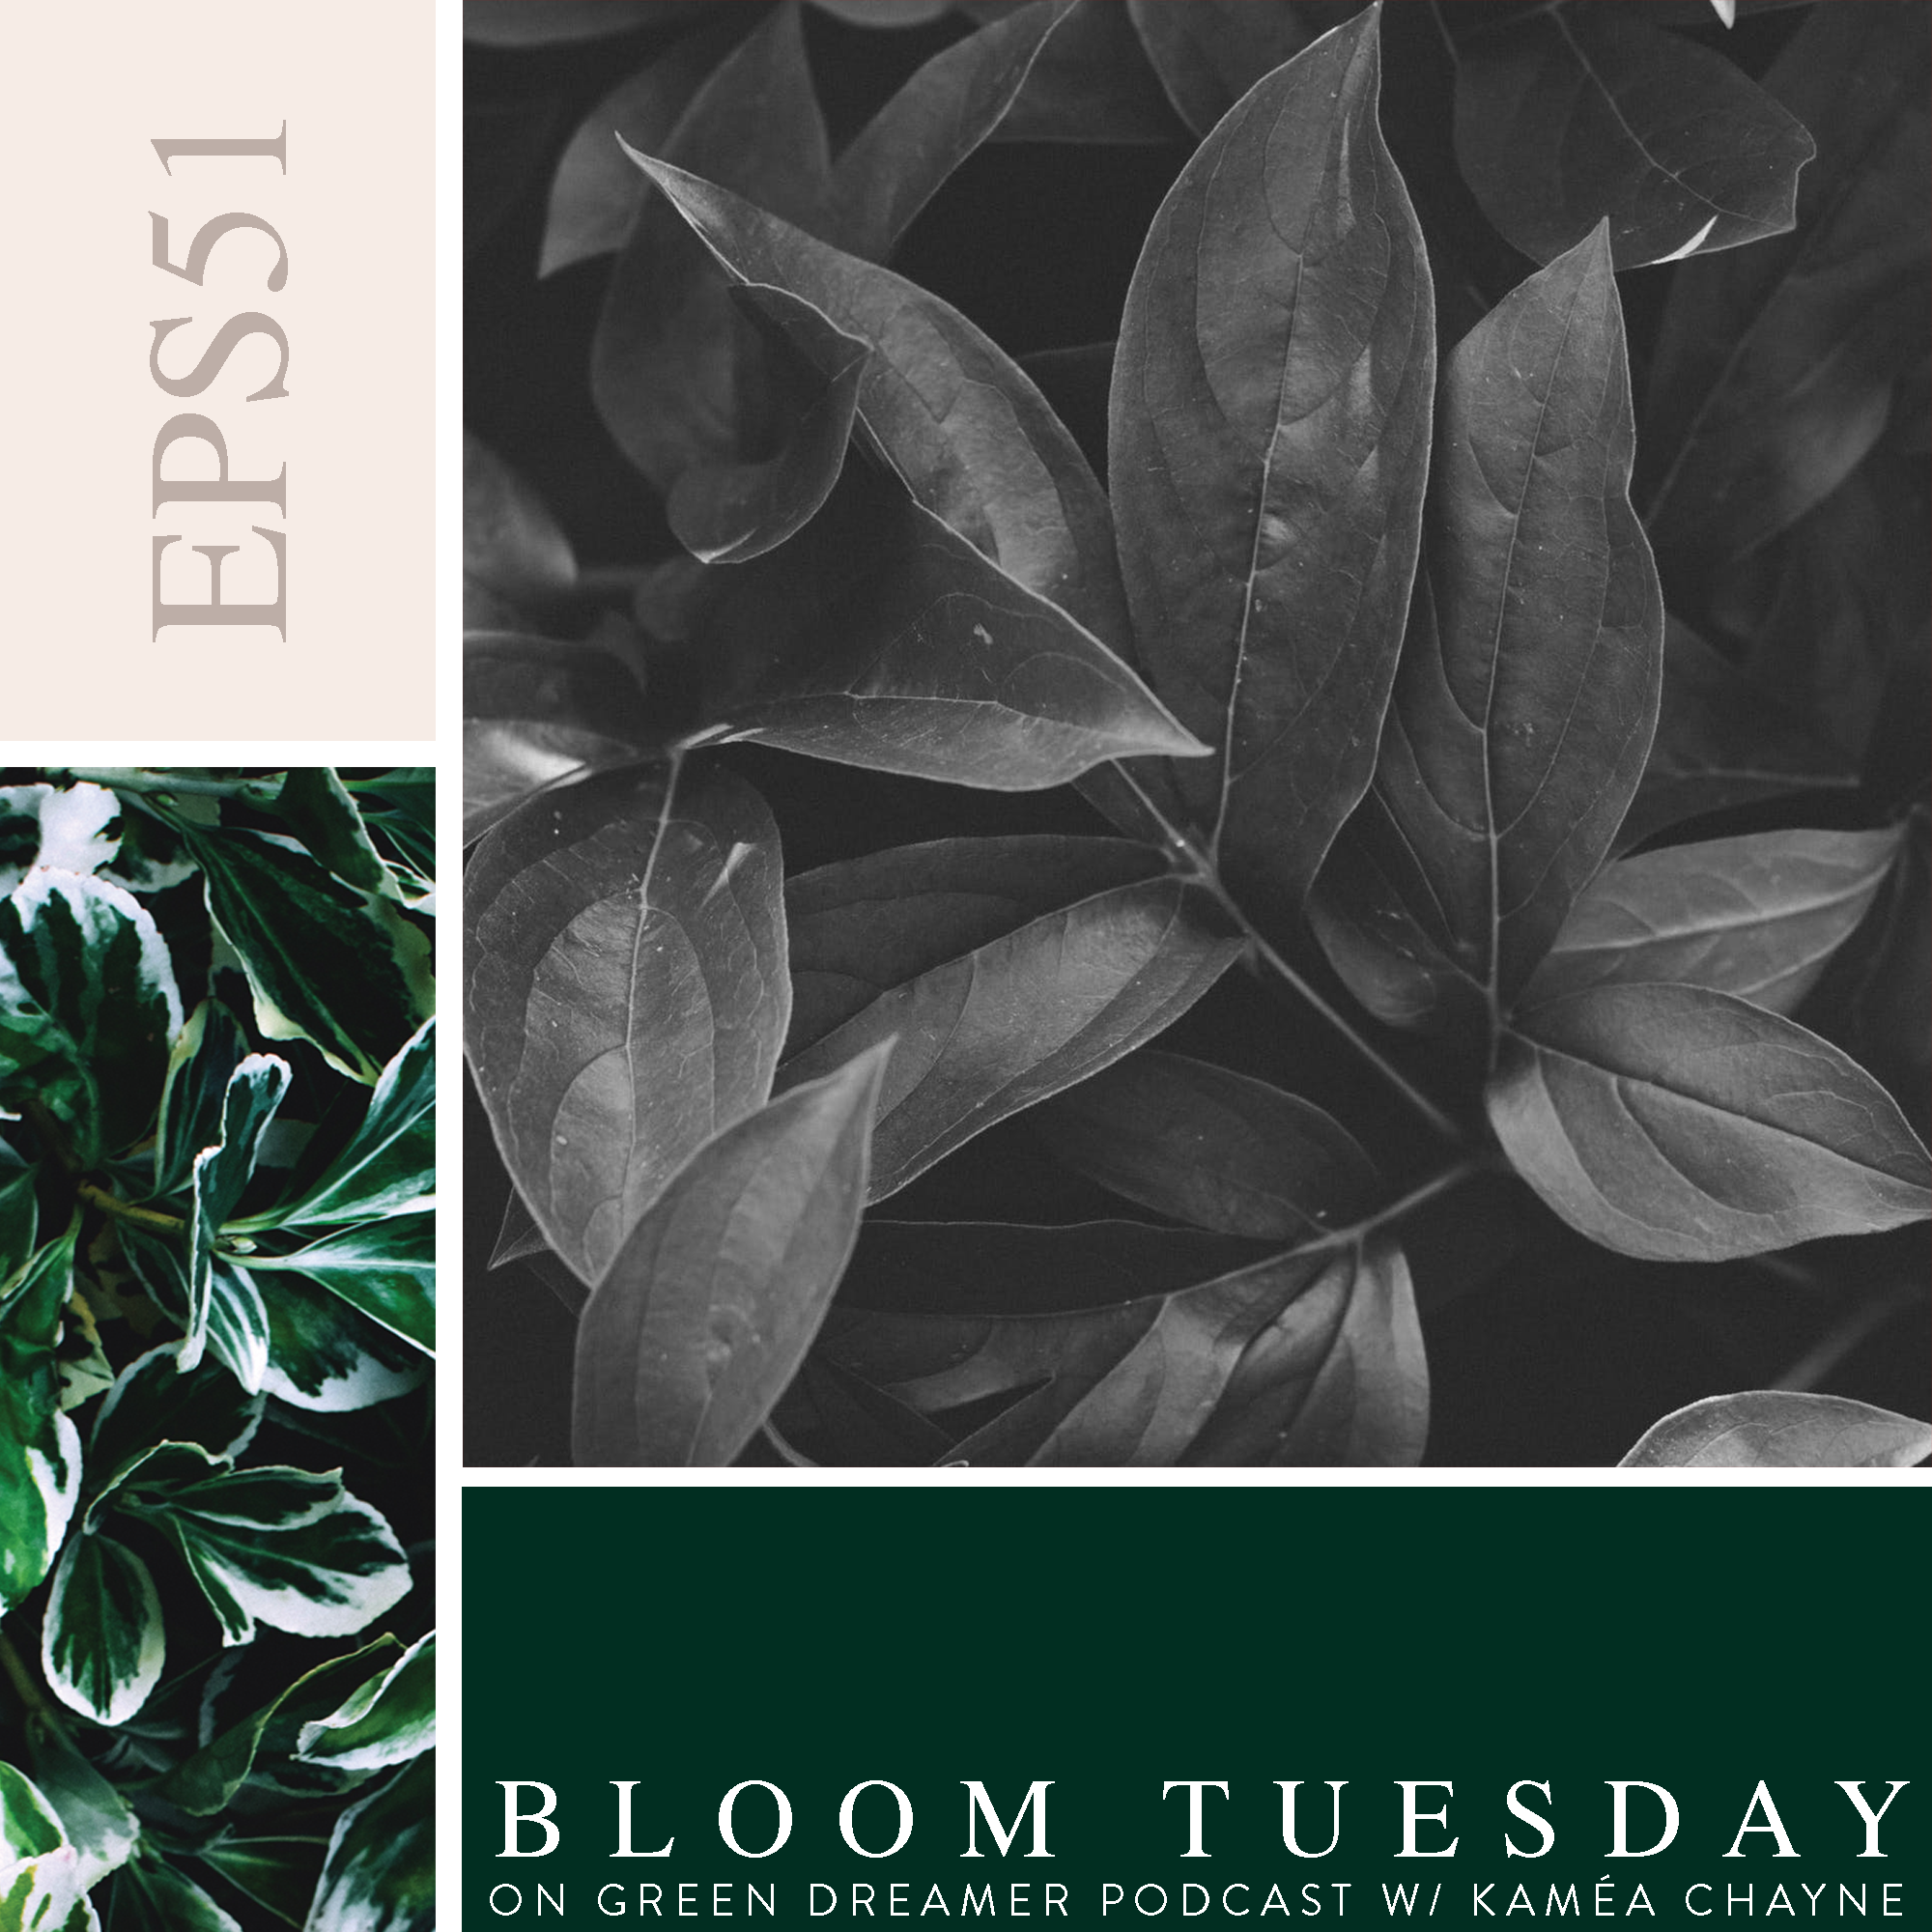 51) BLOOM TUESDAY